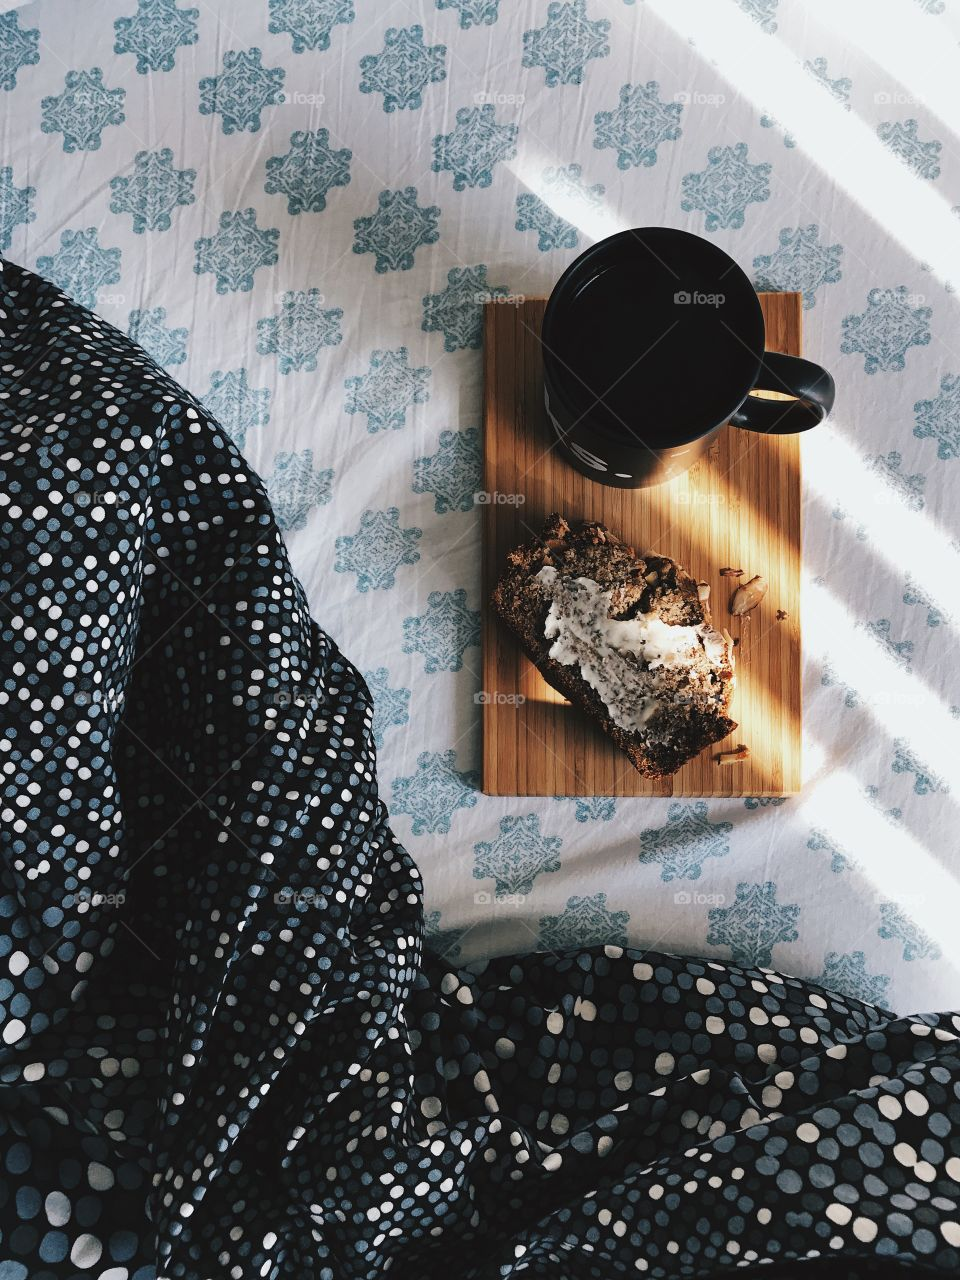 Coffee and banana bread on the bed.